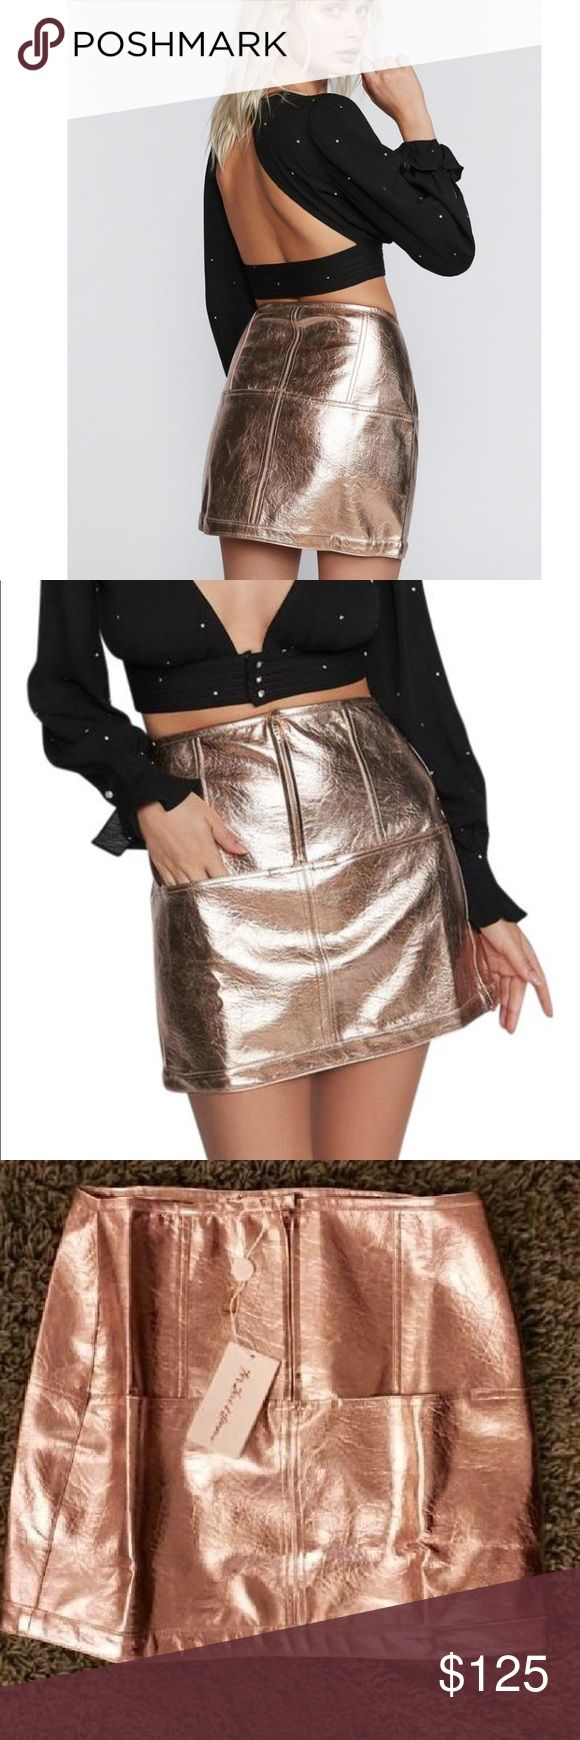 For Love & Lemons Luna Metallic Skirt NWT Luna Metallic Skirt designed on gold metallic leather with front metal zipper and inset front pocket seams (size down one size for a high waisted look). With its split needle top stitching and slight a-line flared hem, no detail is left behind. Dress up with your best-friend to channel your inner '90s self with the Cosmic Lace Bodysuit and the Luna Metallic Dress.  Exposed front metal zipper Inset pocket seams Slight A-line flared hem Lined For Love…